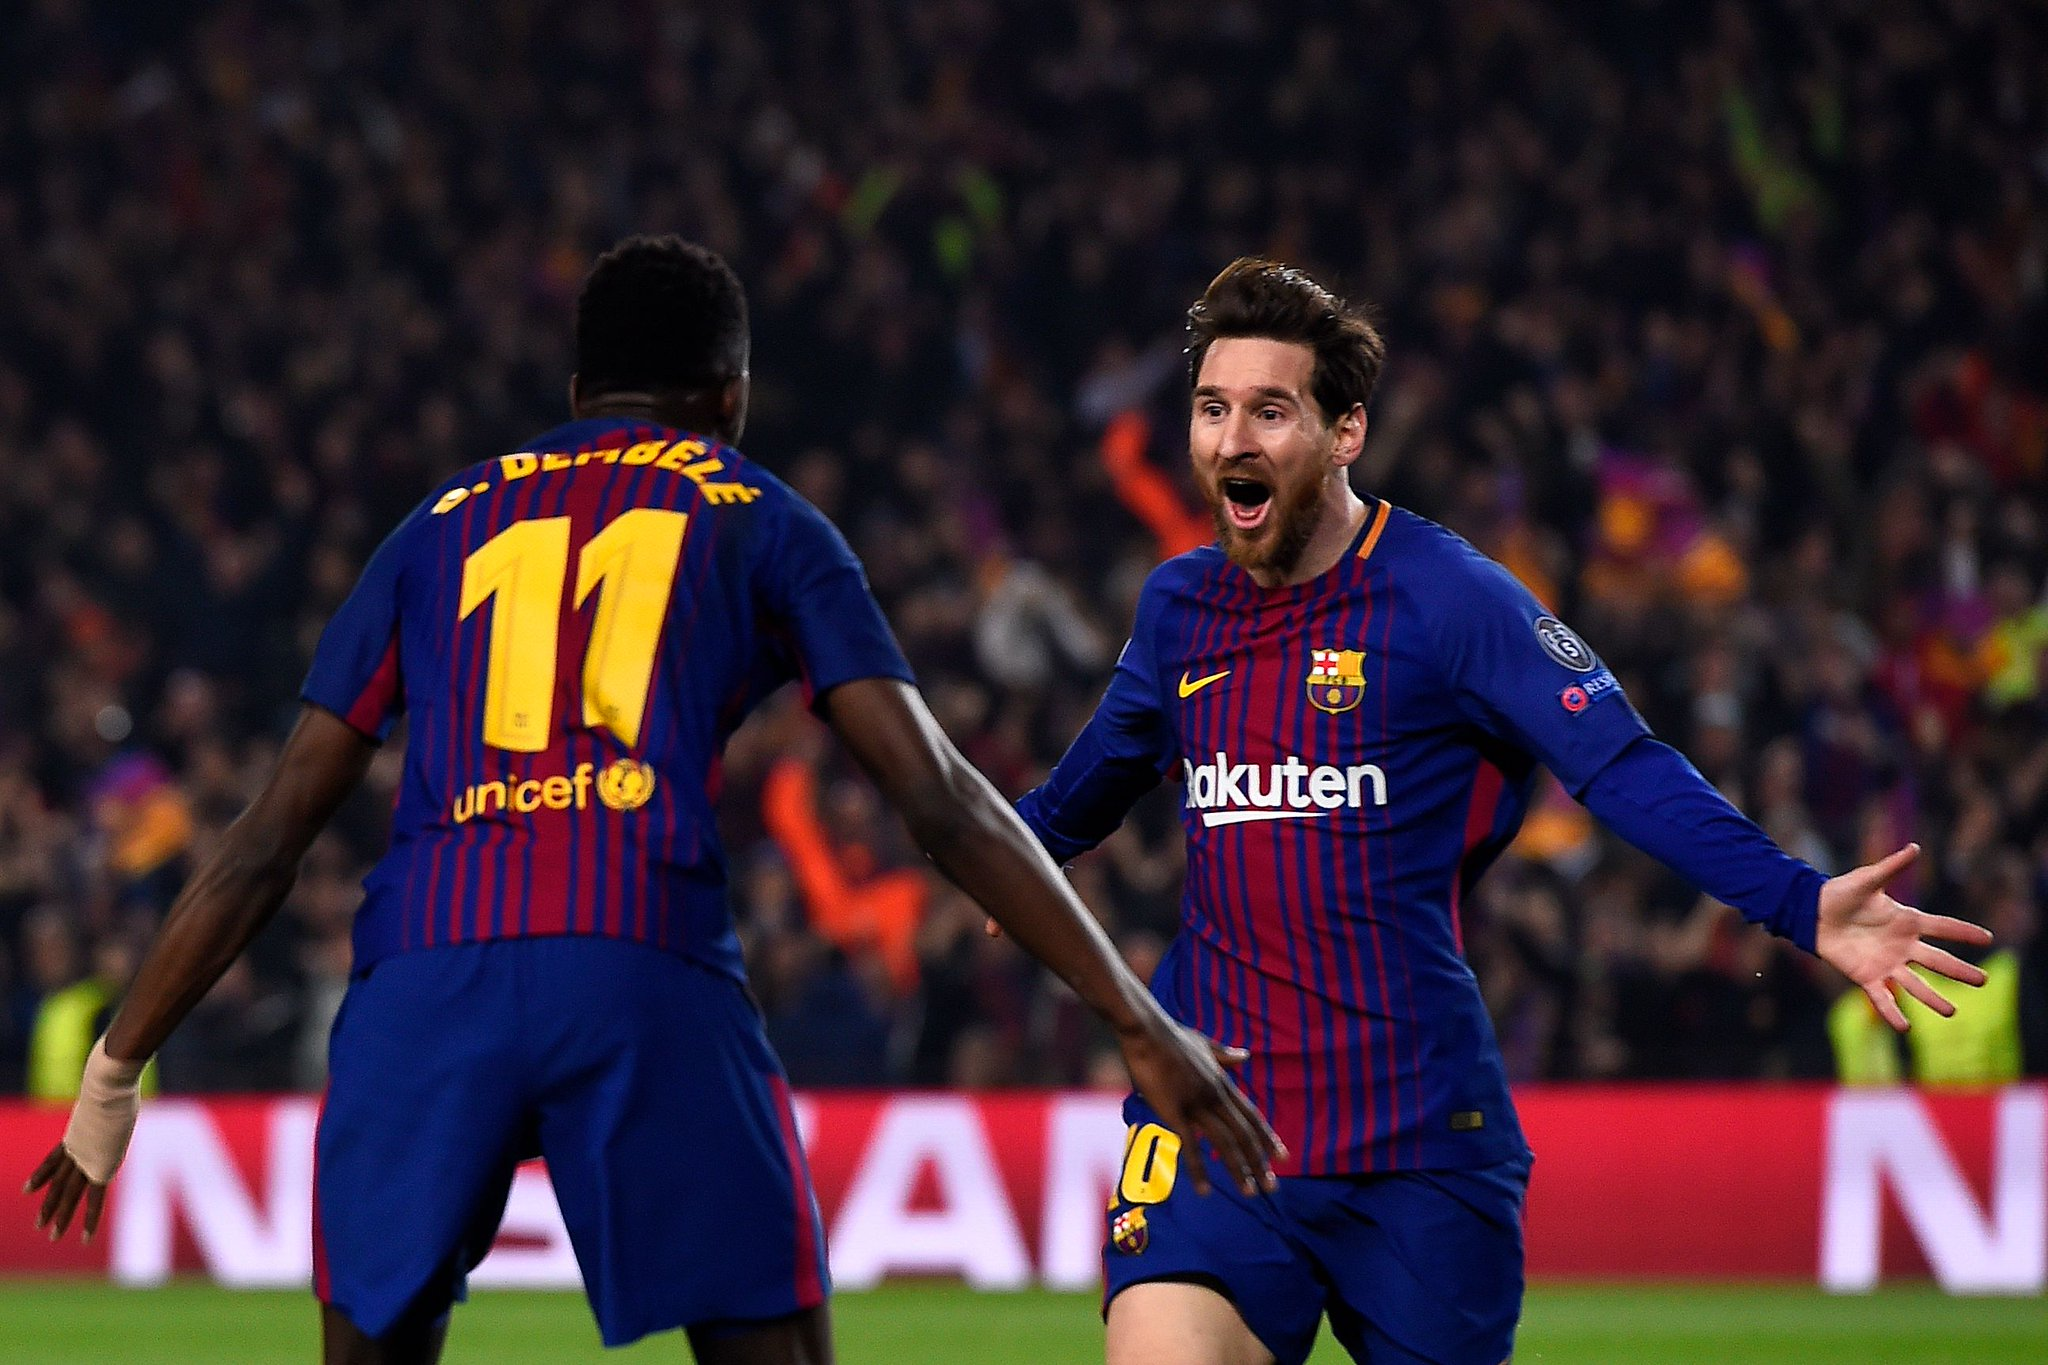 UCL: Moses Crashes With Chelsea As New Dad Messi Hits Landmark Goal